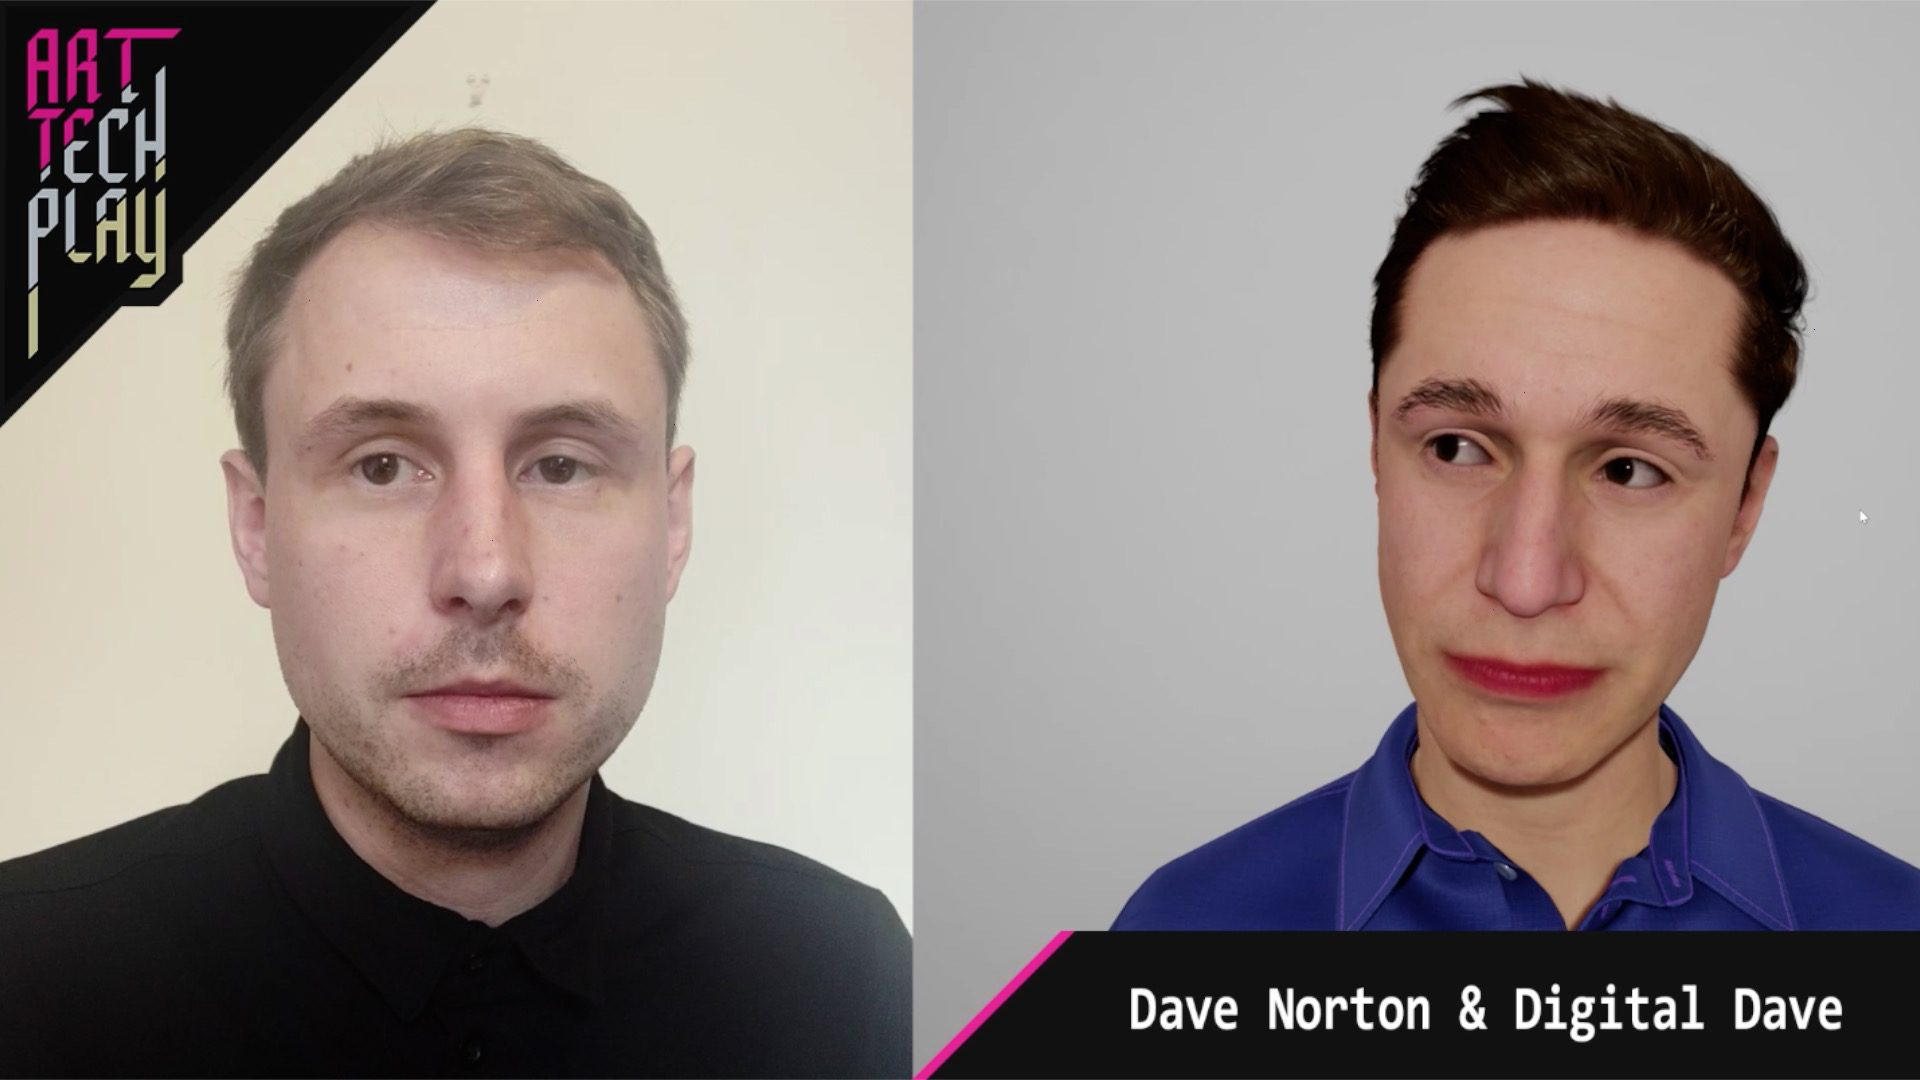 Dave Norton on creating a motion capture system